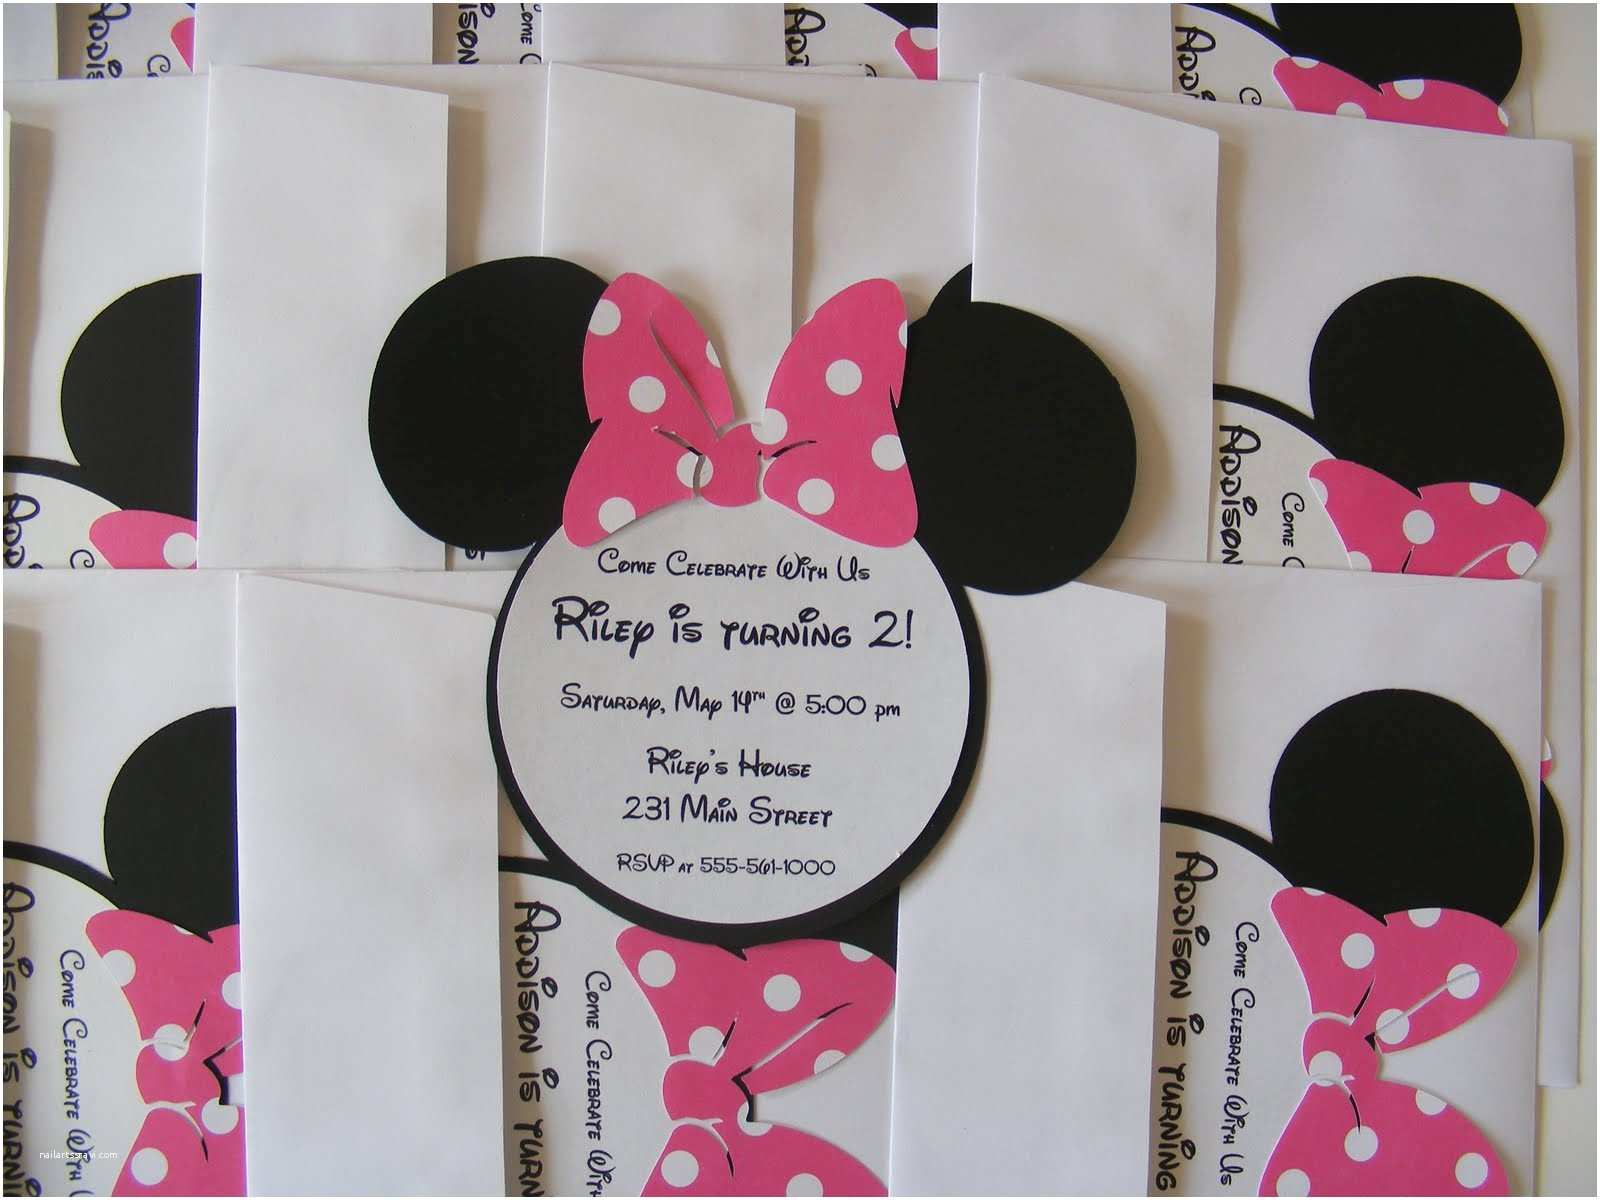 Minnie Mouse Party Invitations Whimsical Creations by Ann Minnie Mouse Birthday Party Ideas